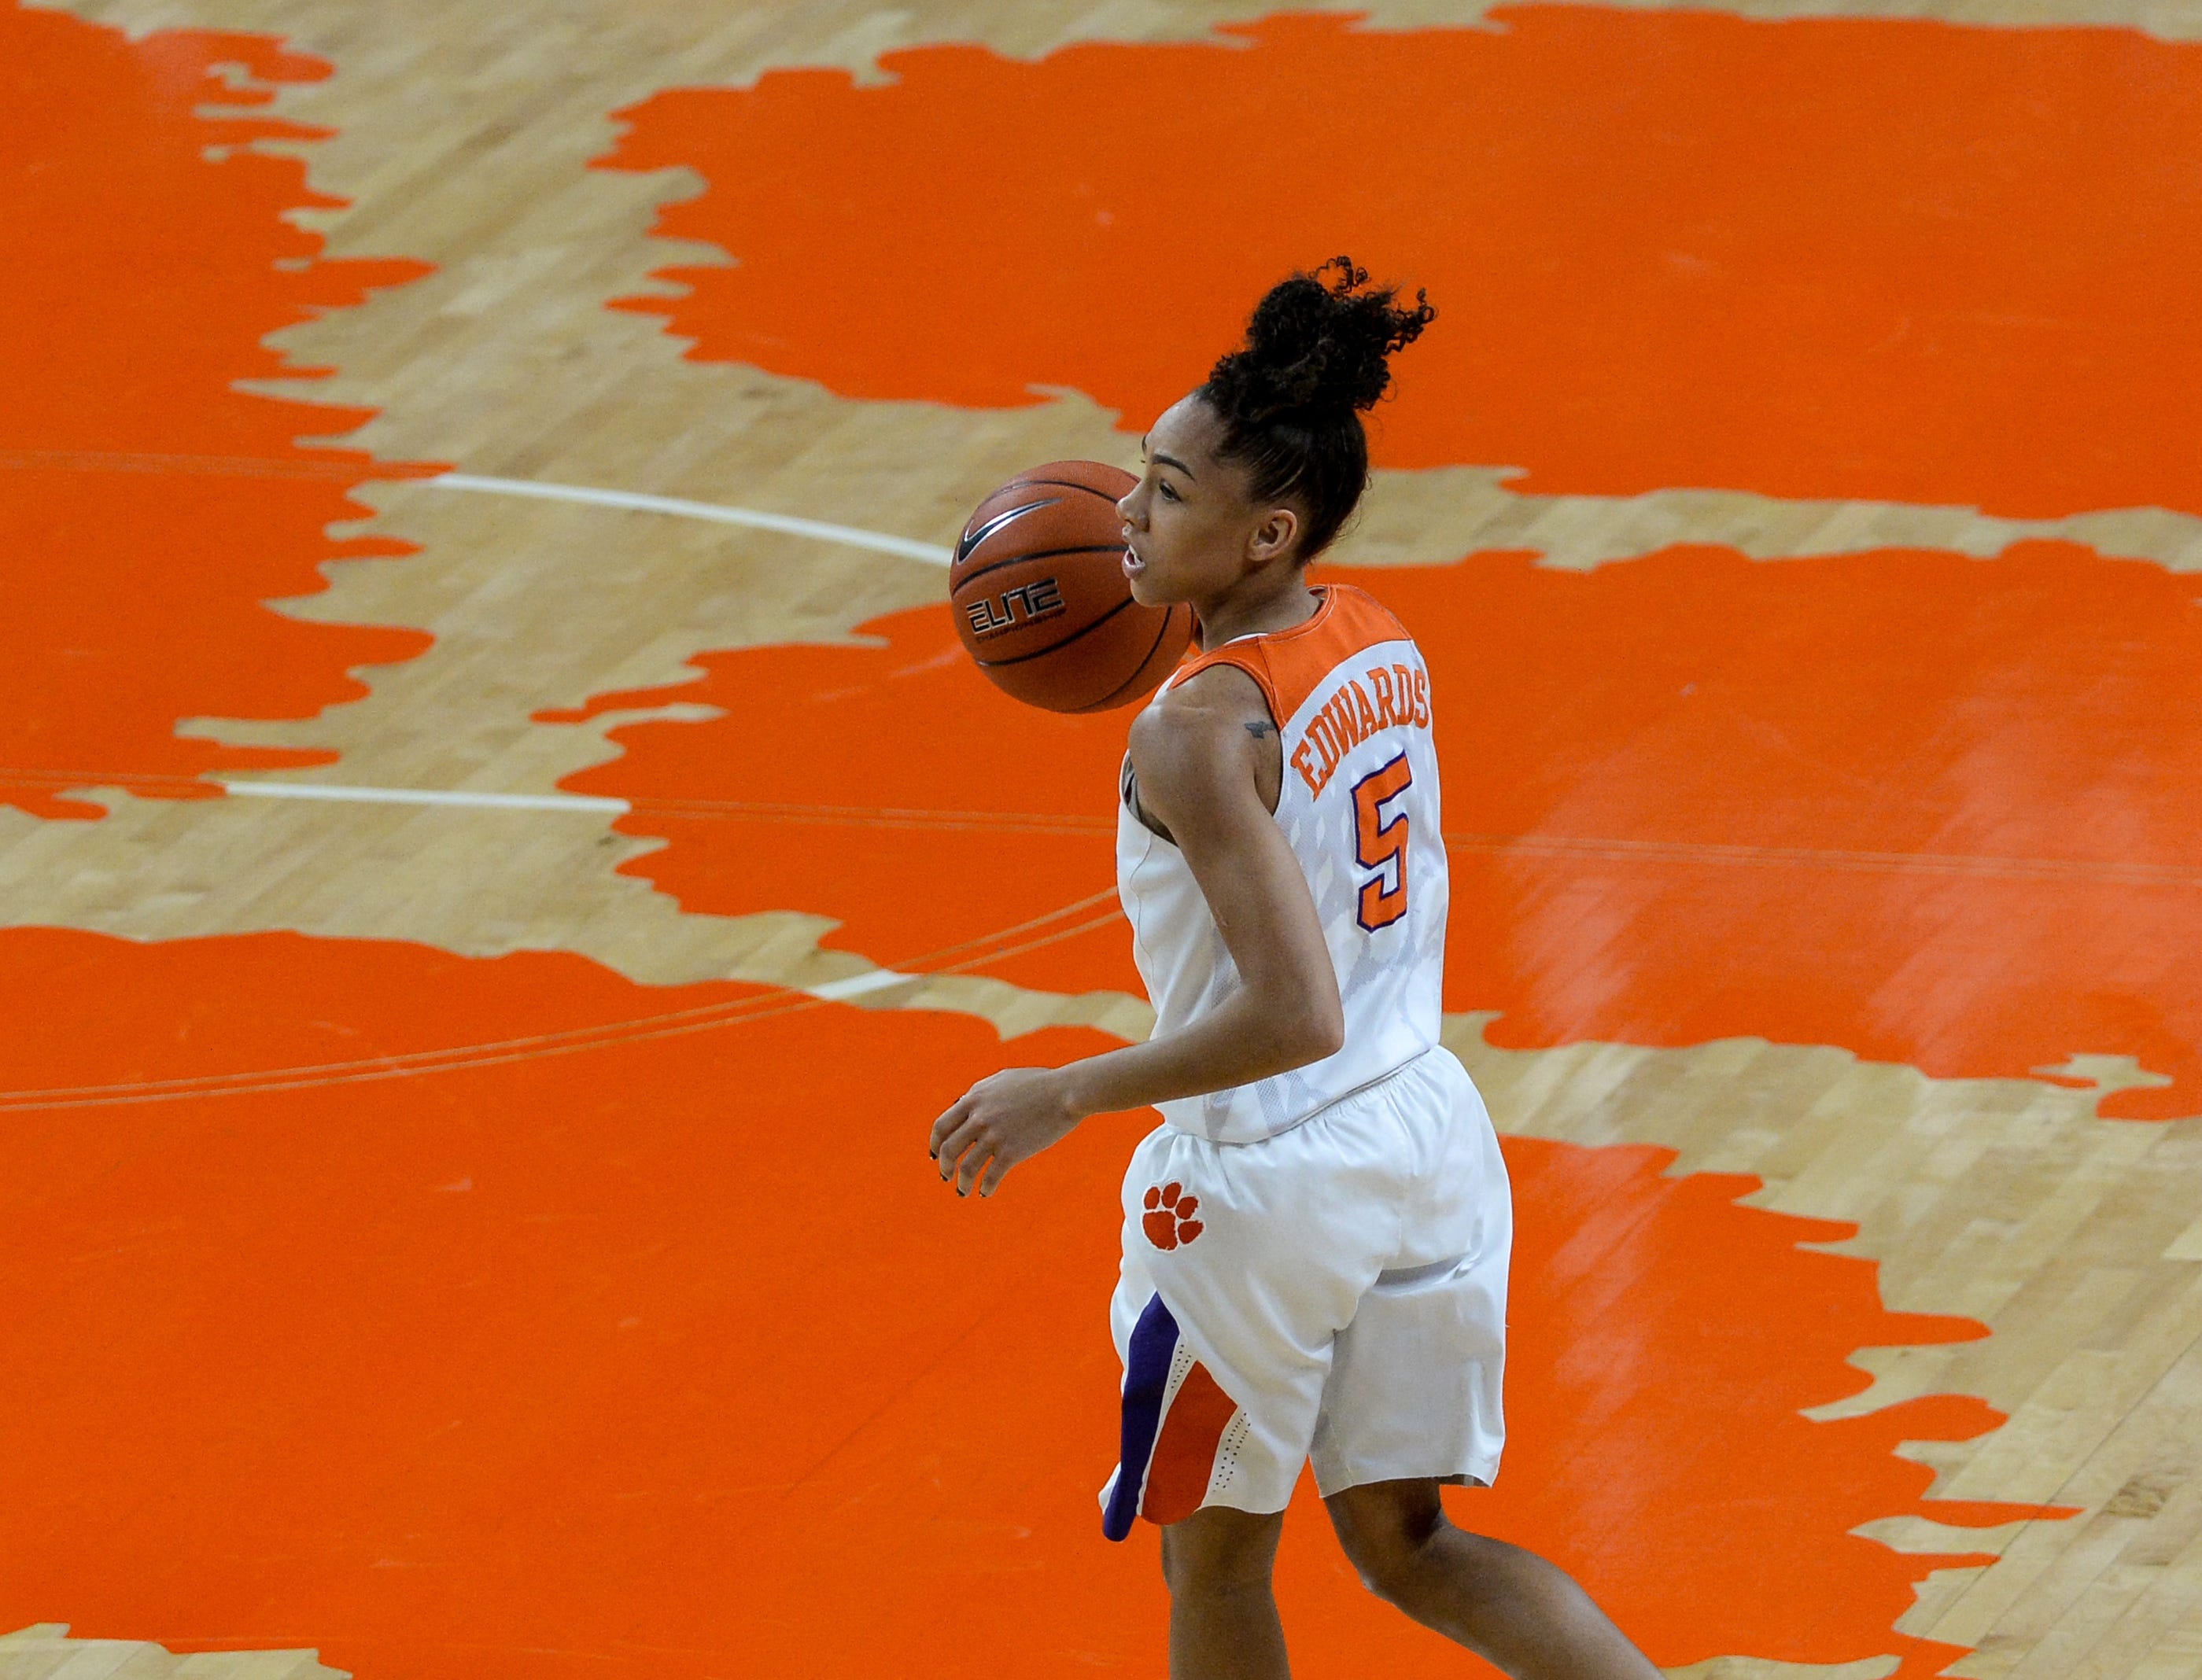 Clemson guard Danielle Edwards(5) brings the ball up court against Georgia Tech during the first quarter at Littlejohn Coliseum in Clemson Thursday, January 17, 2019.